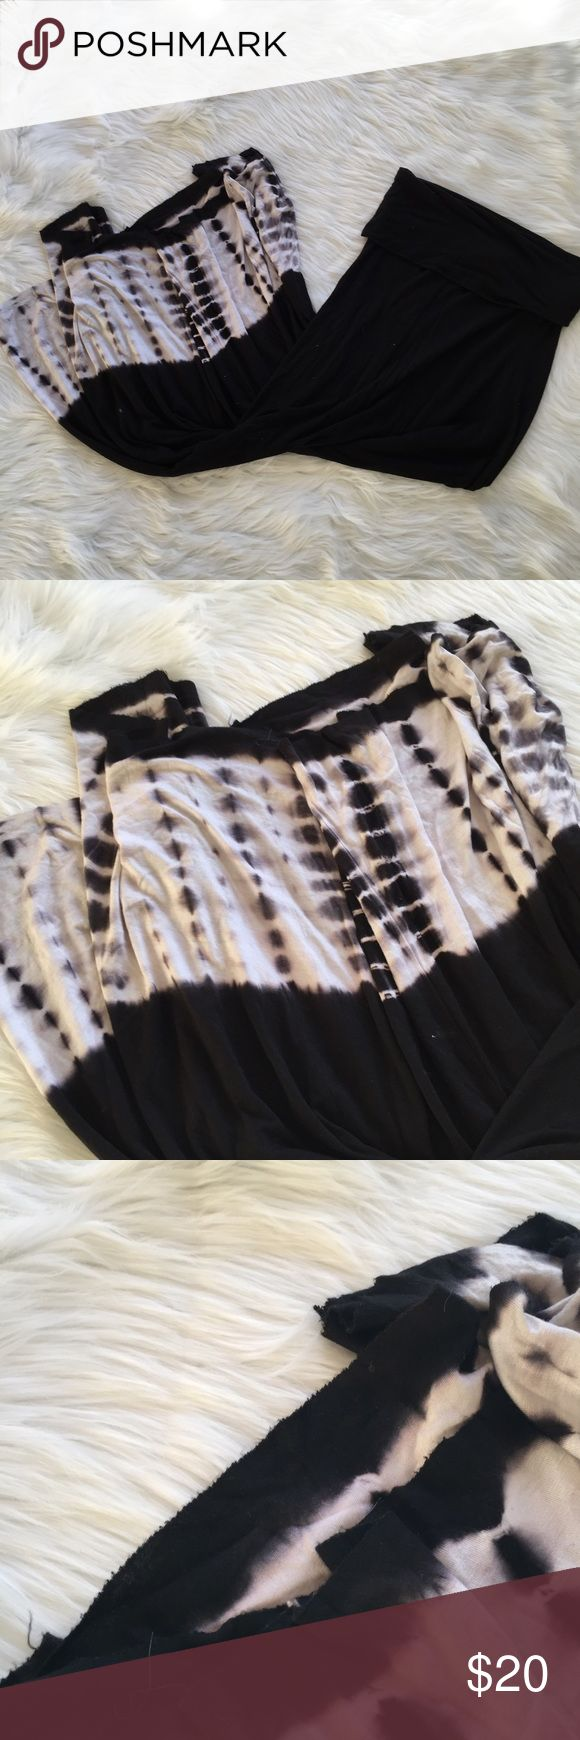 {Fresh Produce} Black Maxi Skirt Used in excellent condition. No Trades / No PayPal /  Smoke-Free Home / Ask Questions! / No Model Requests Please / Like what you see but dont like the price? MAKE ME AN OFFER! Fresh Produce Skirts Maxi